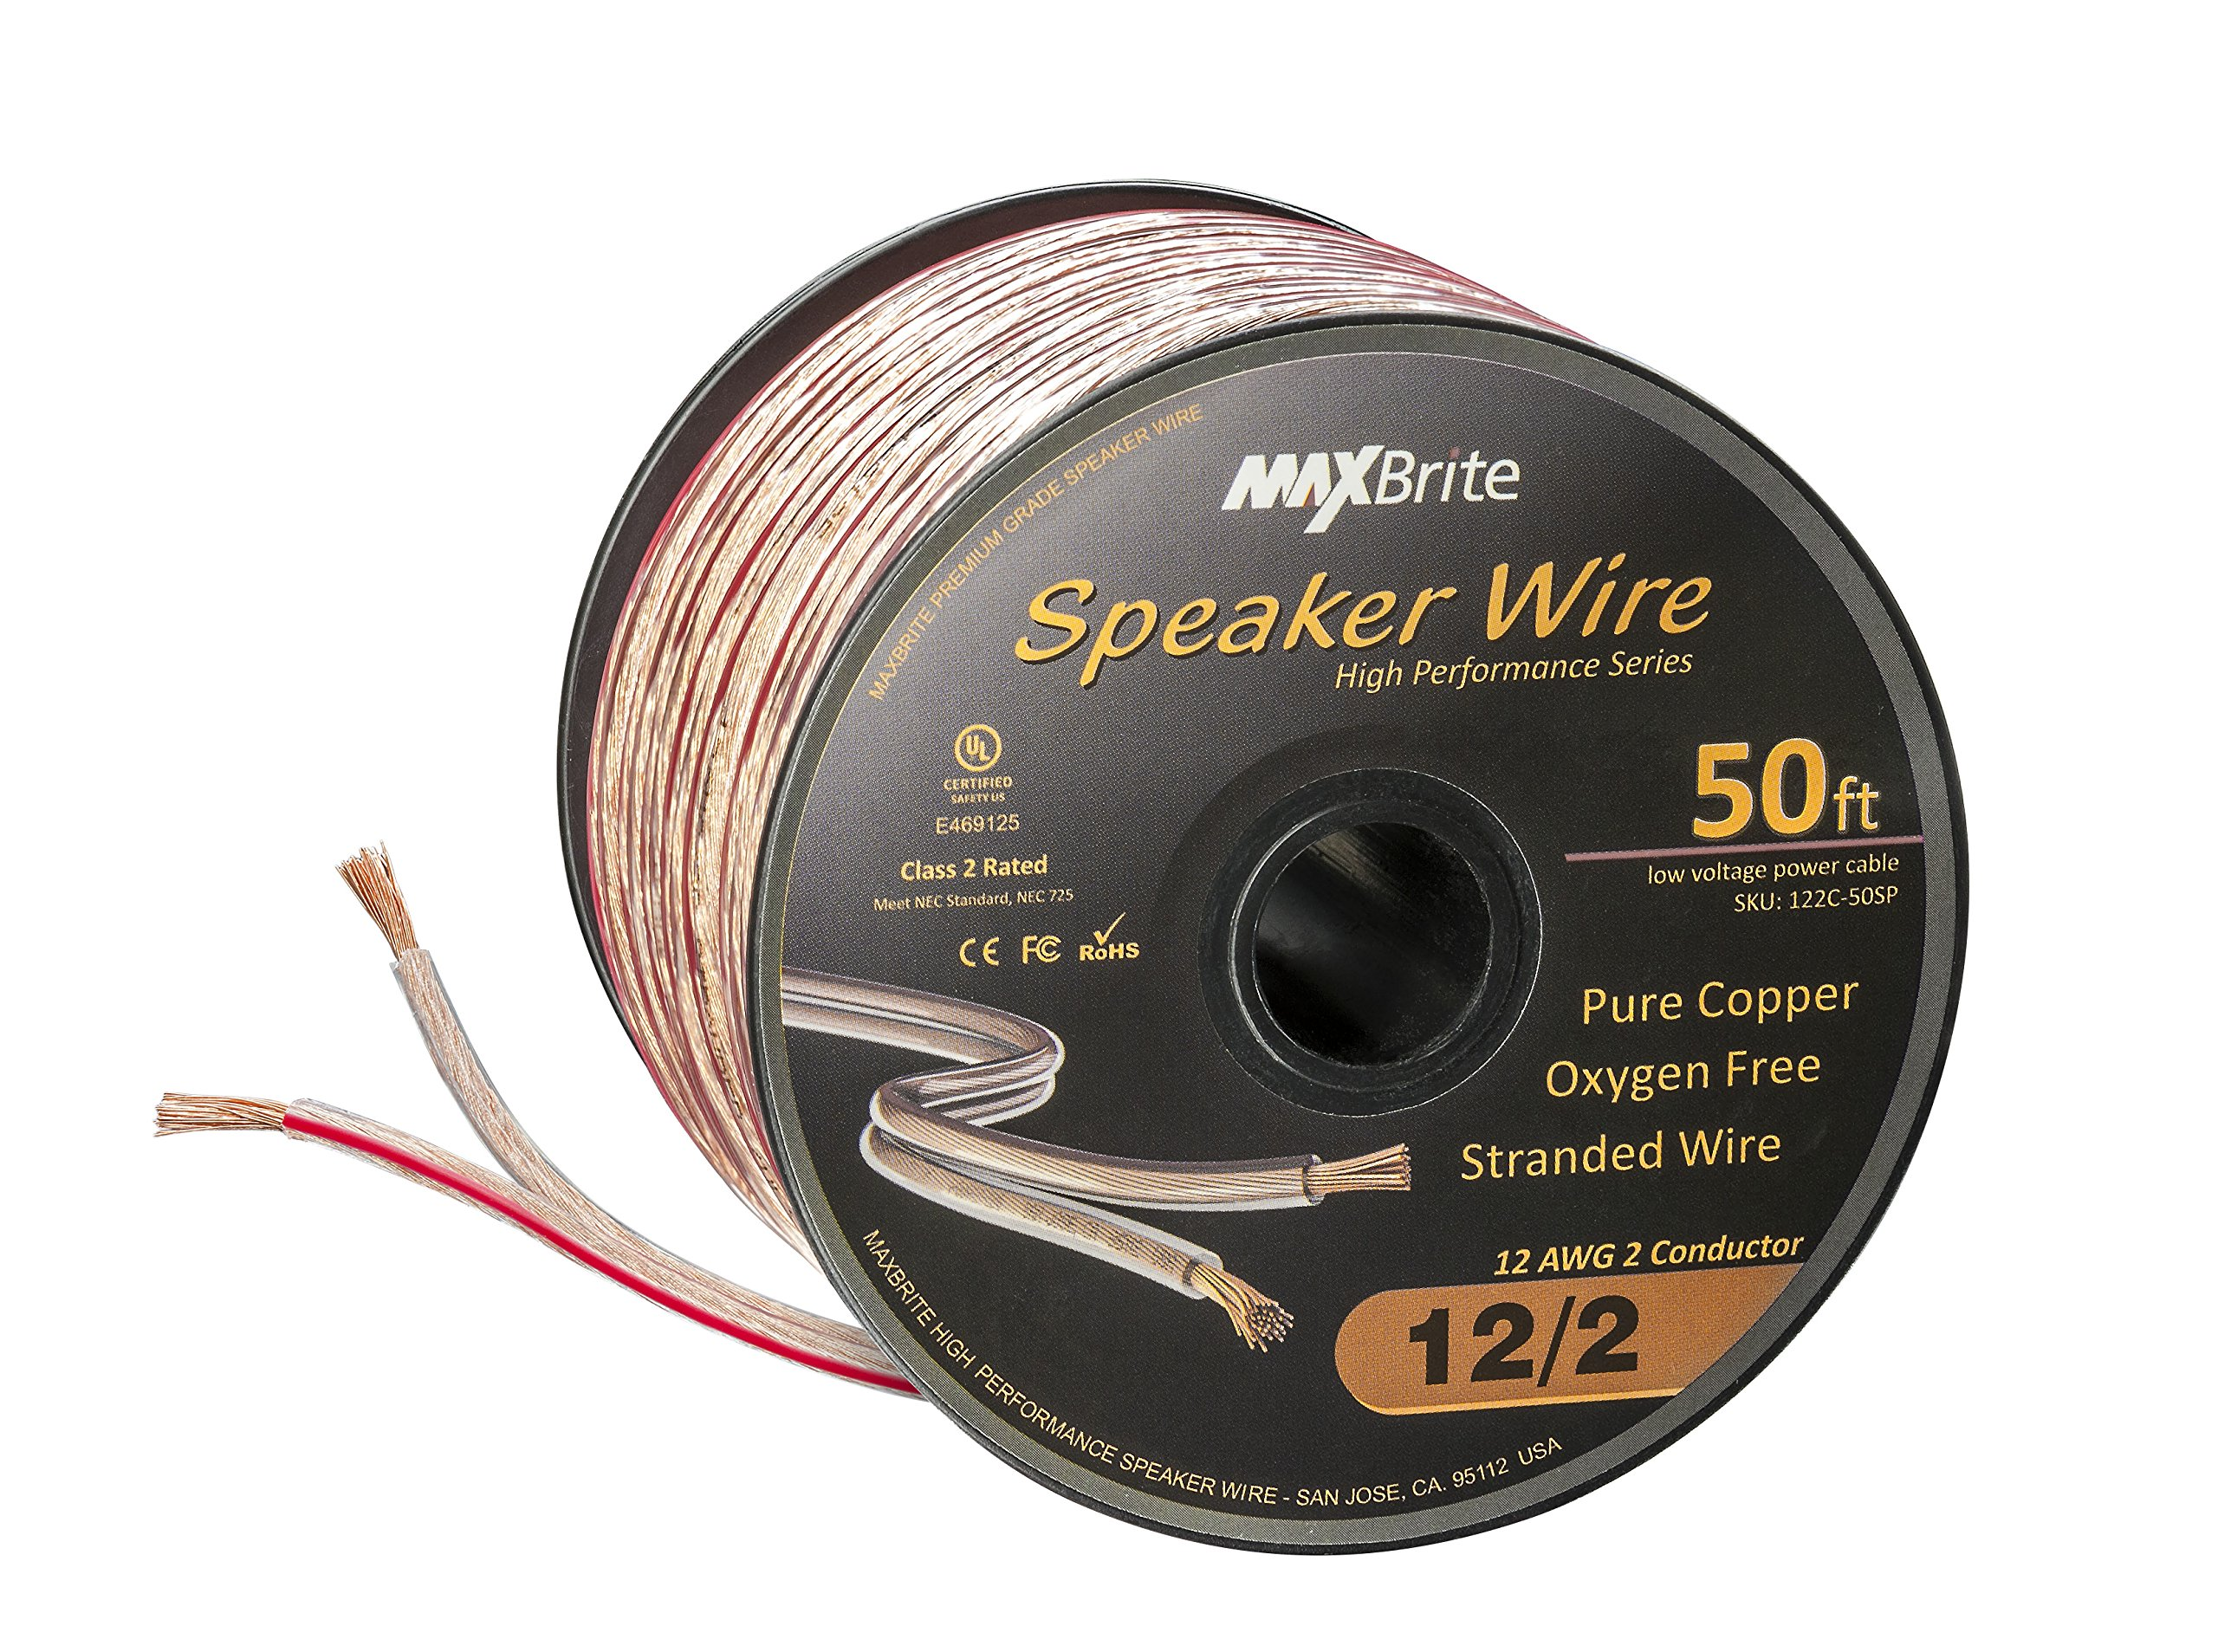 High Performance 12 Gauge Speaker Wire, Oxygen Free Pure Copper - UL Listed Class 2 (50 Feet Spool) by MaxBrite